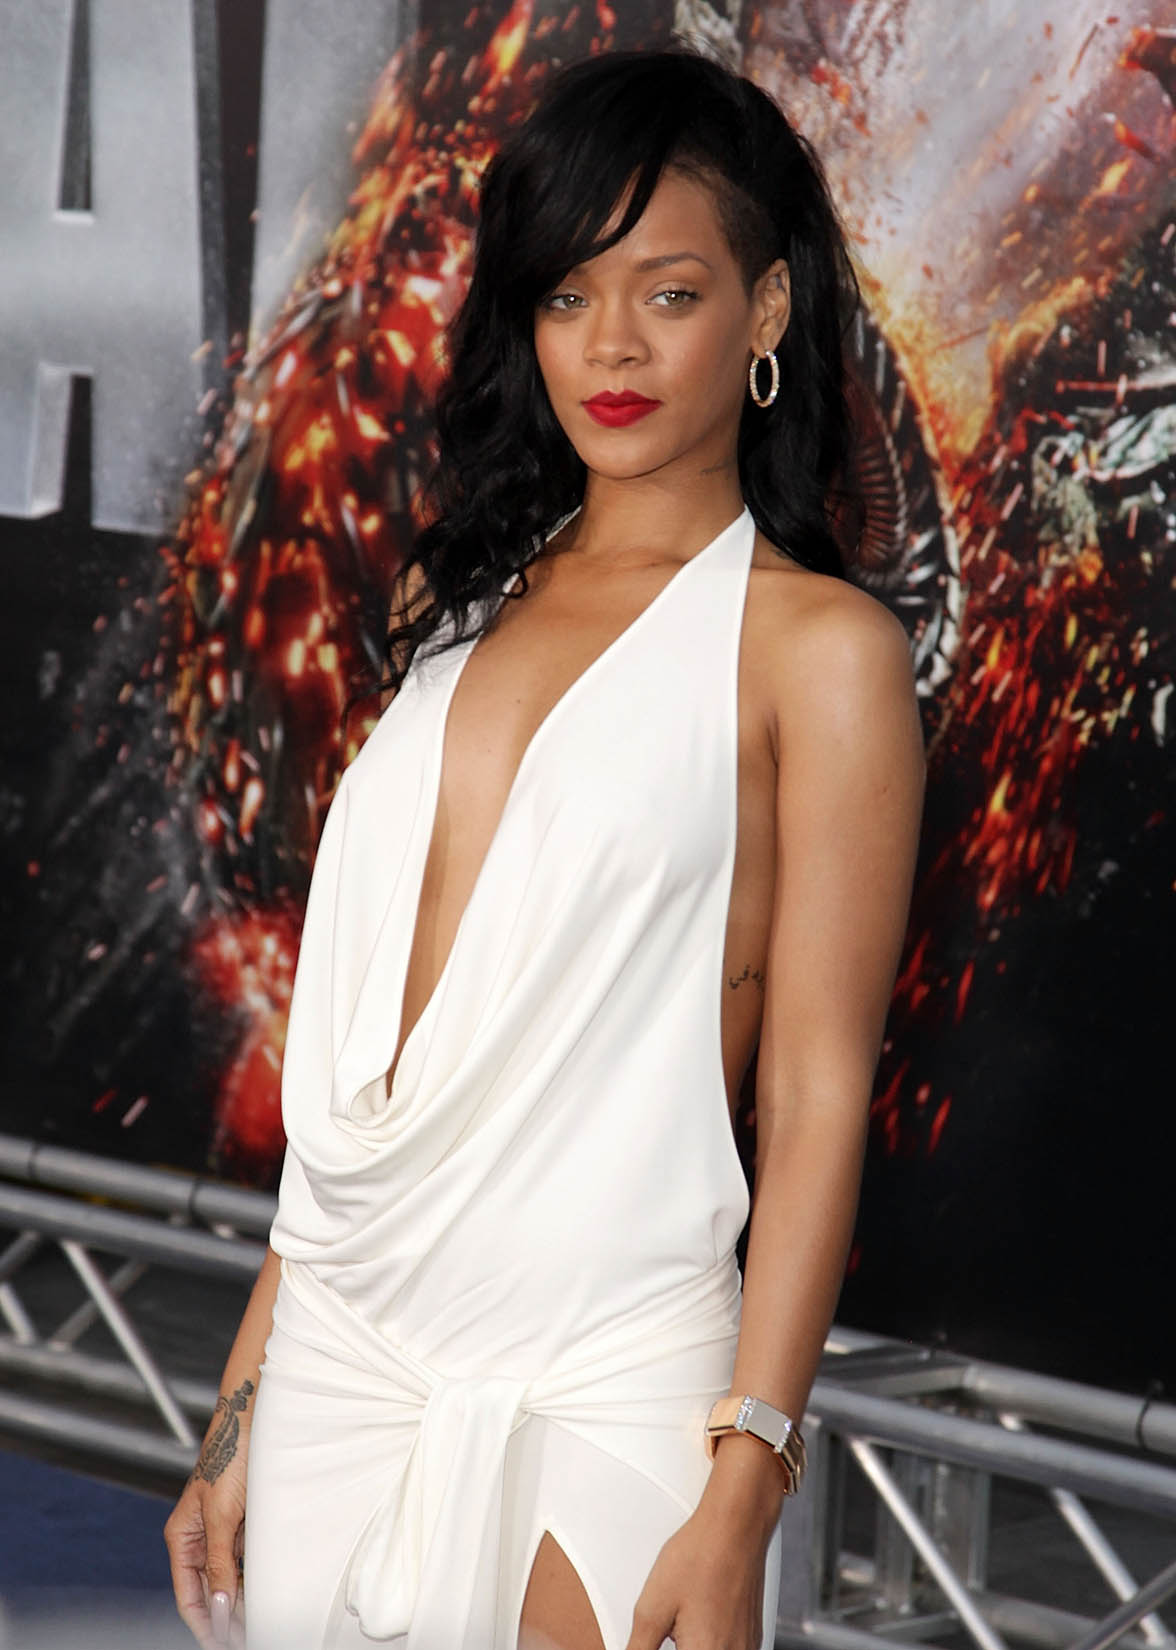 Rihanna goes topless for magazine cover | Entertainment